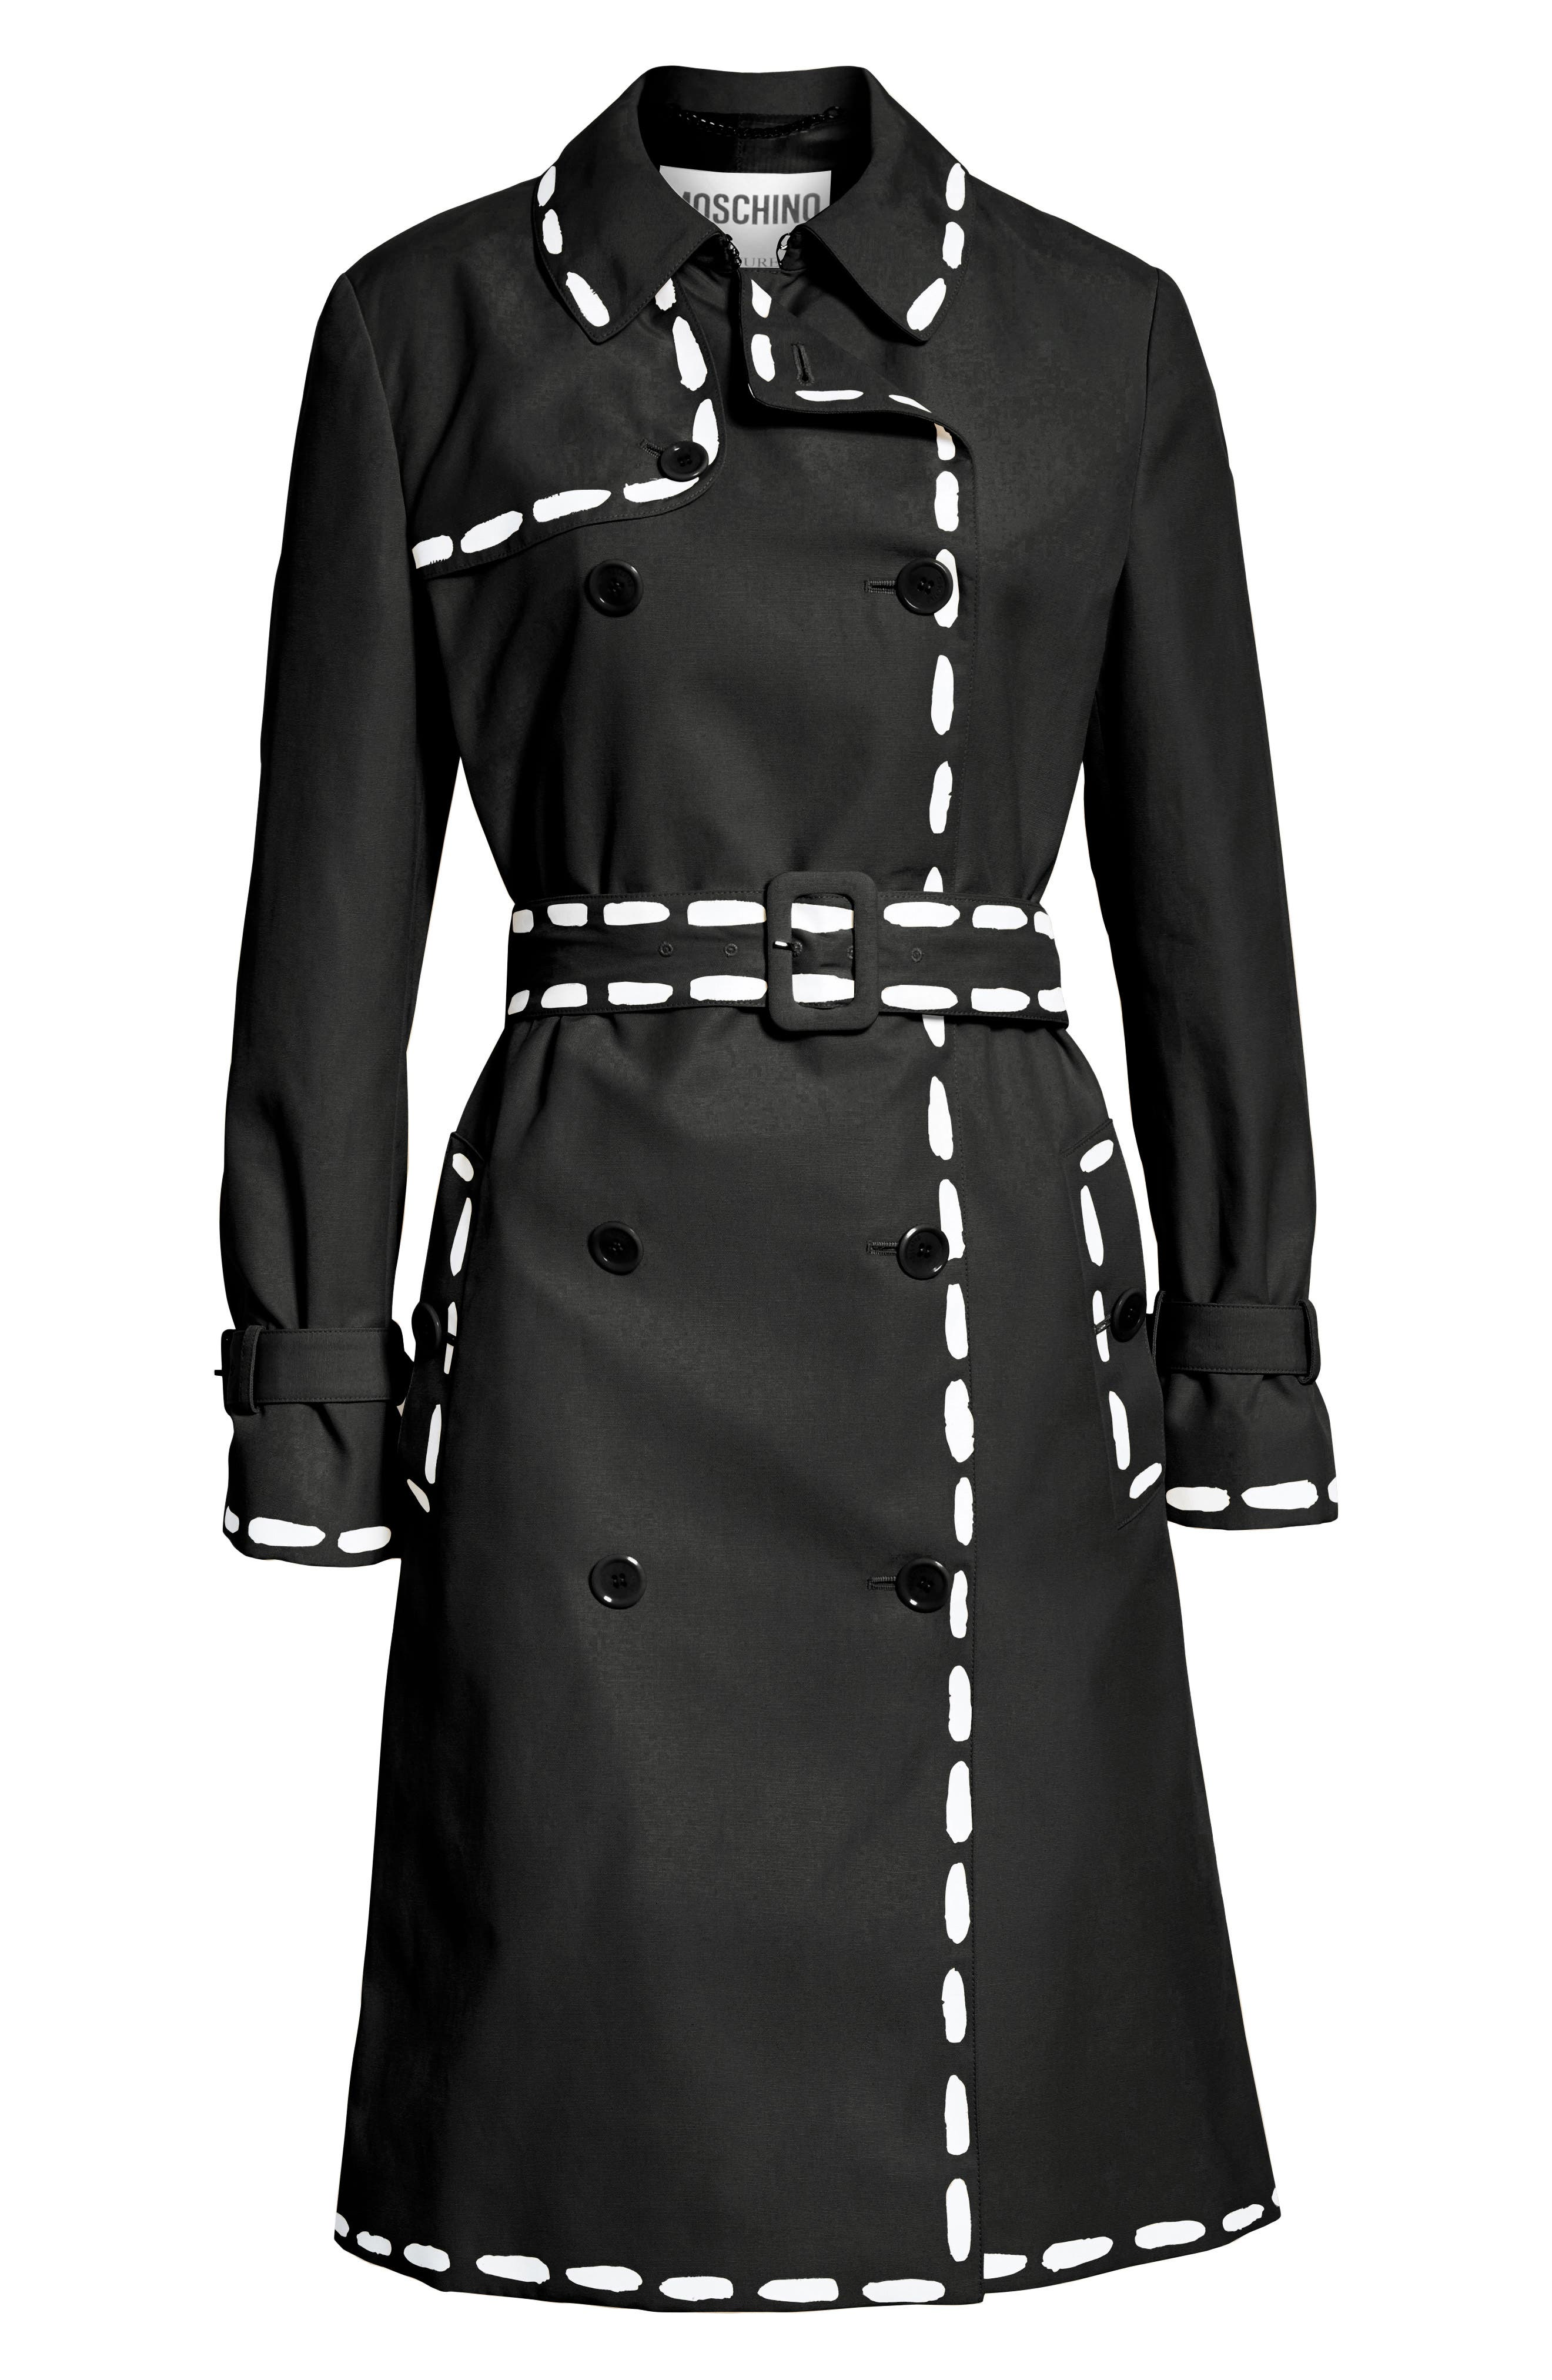 MOSCHINO, Dotted Line Trench Coat, Alternate thumbnail 5, color, BLACK